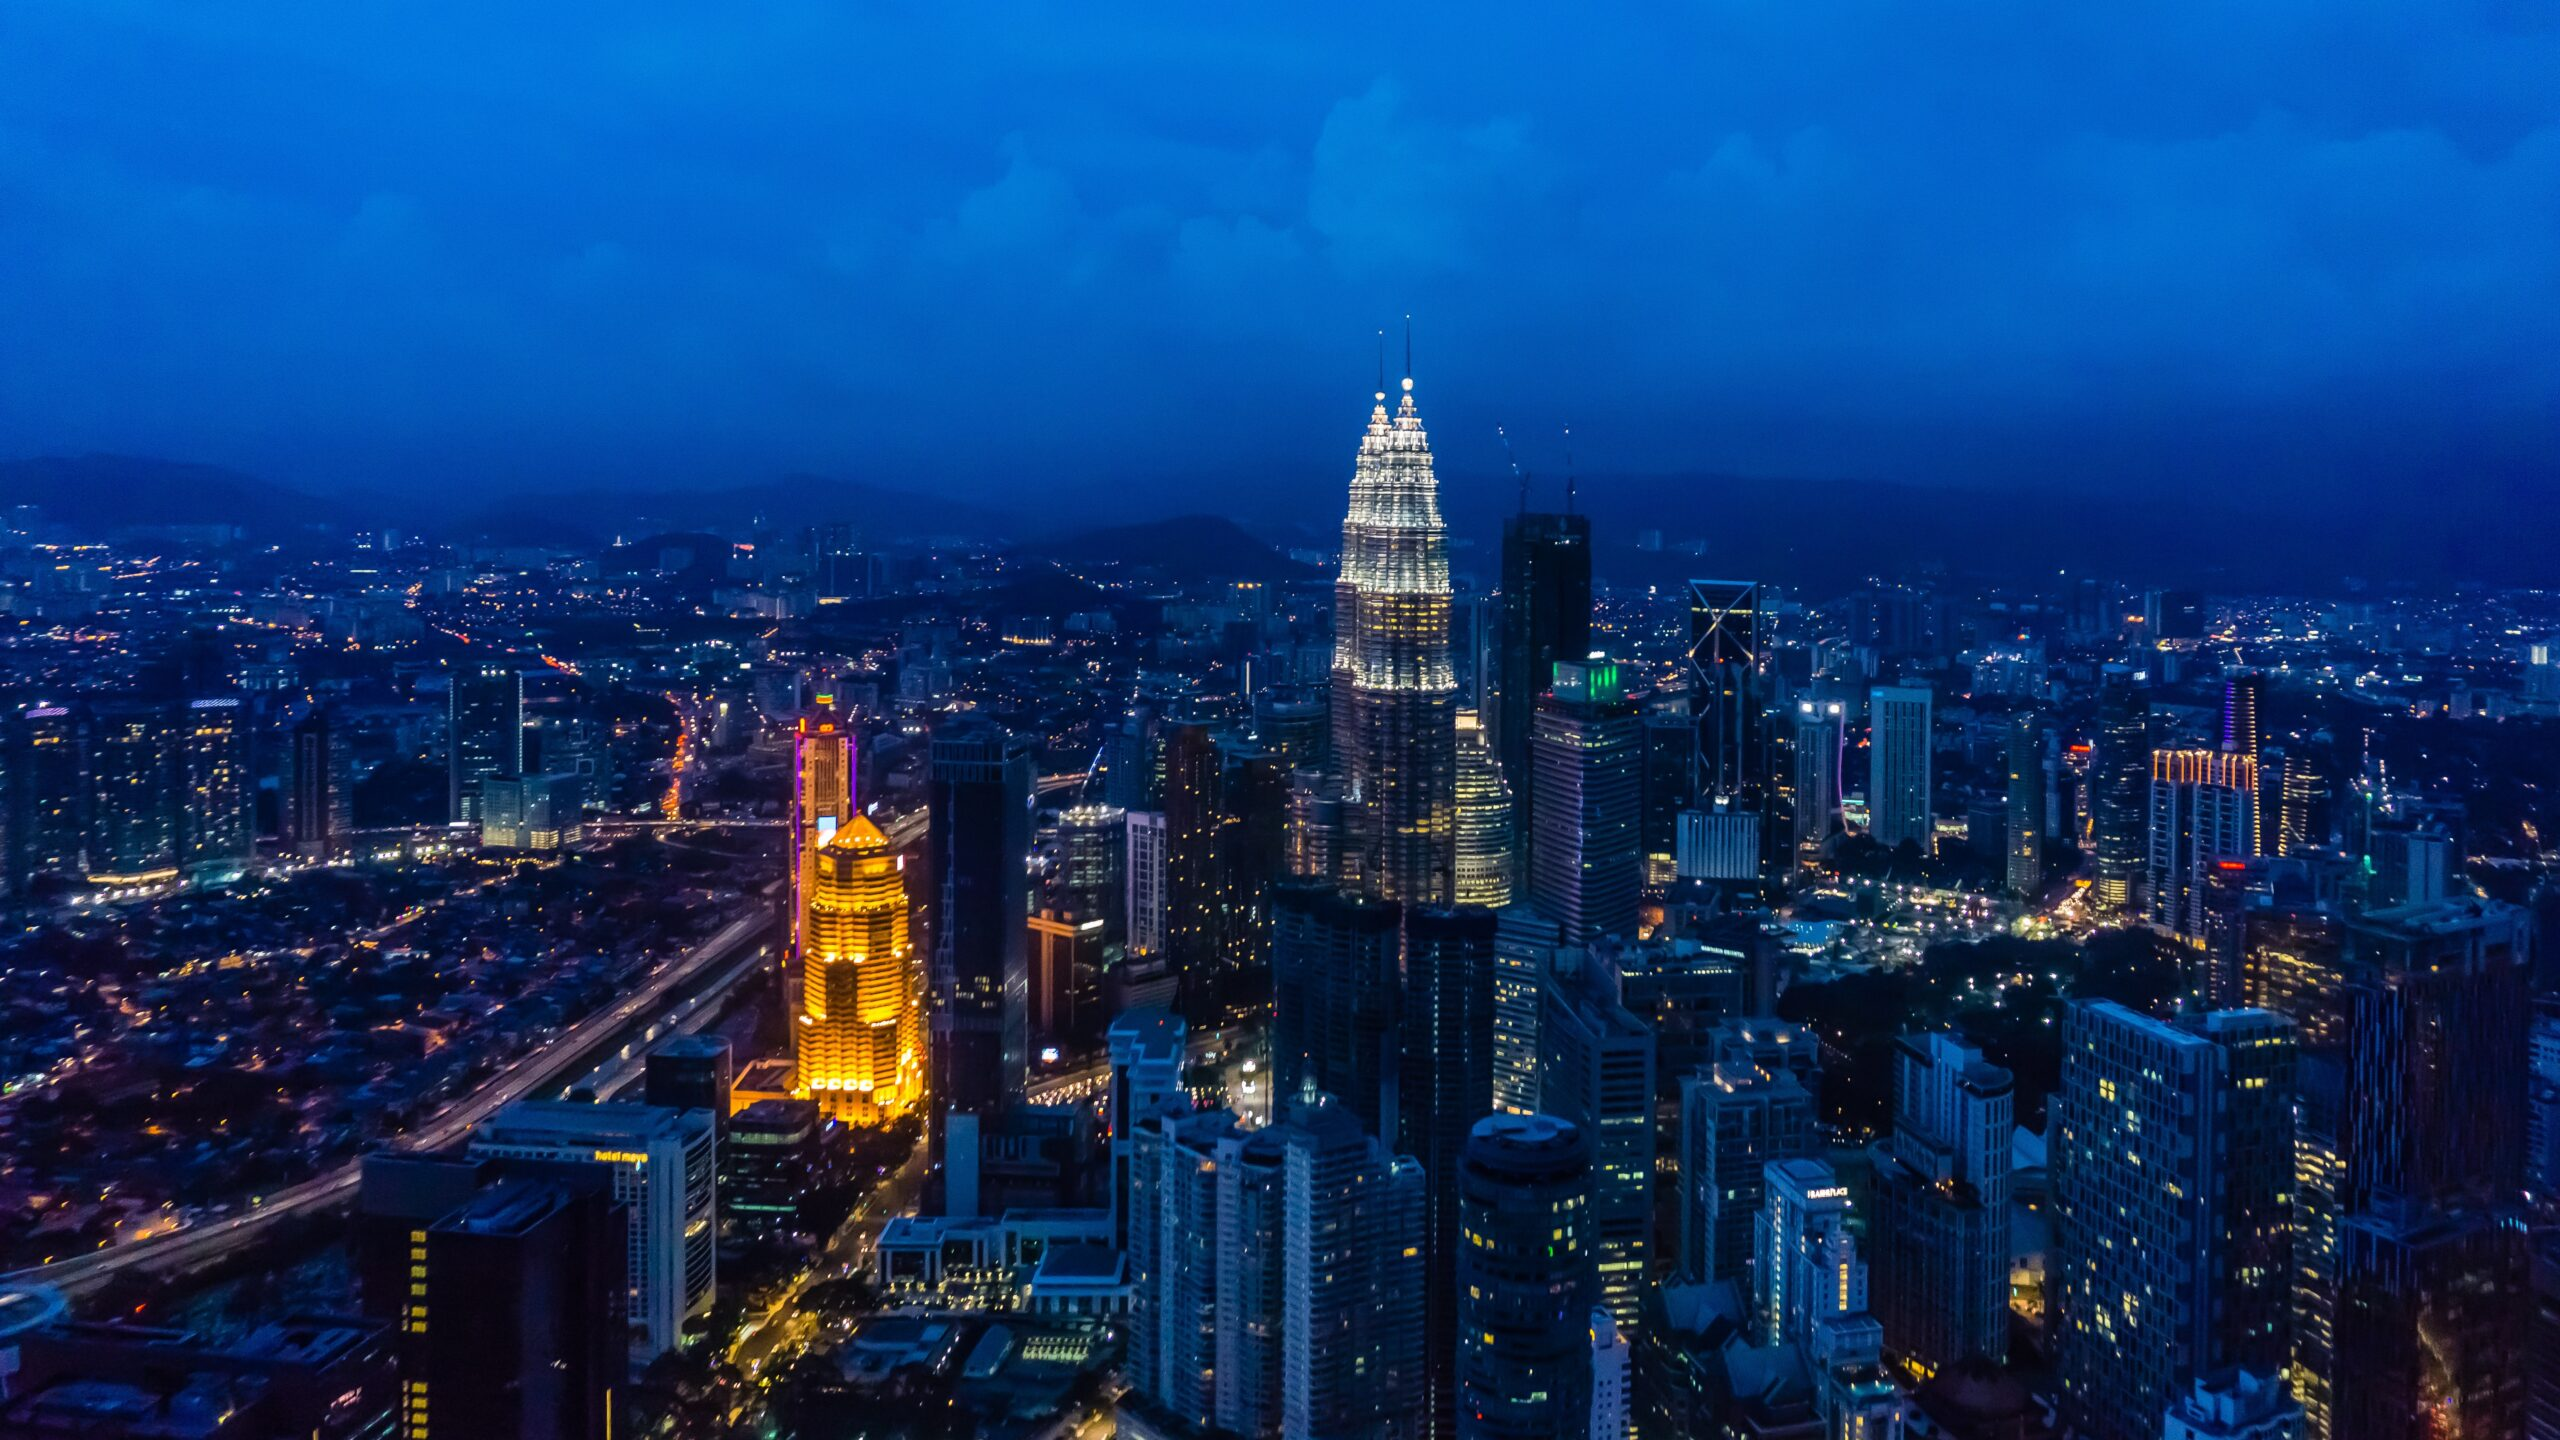 Aerial view of KLCC tower during the night.